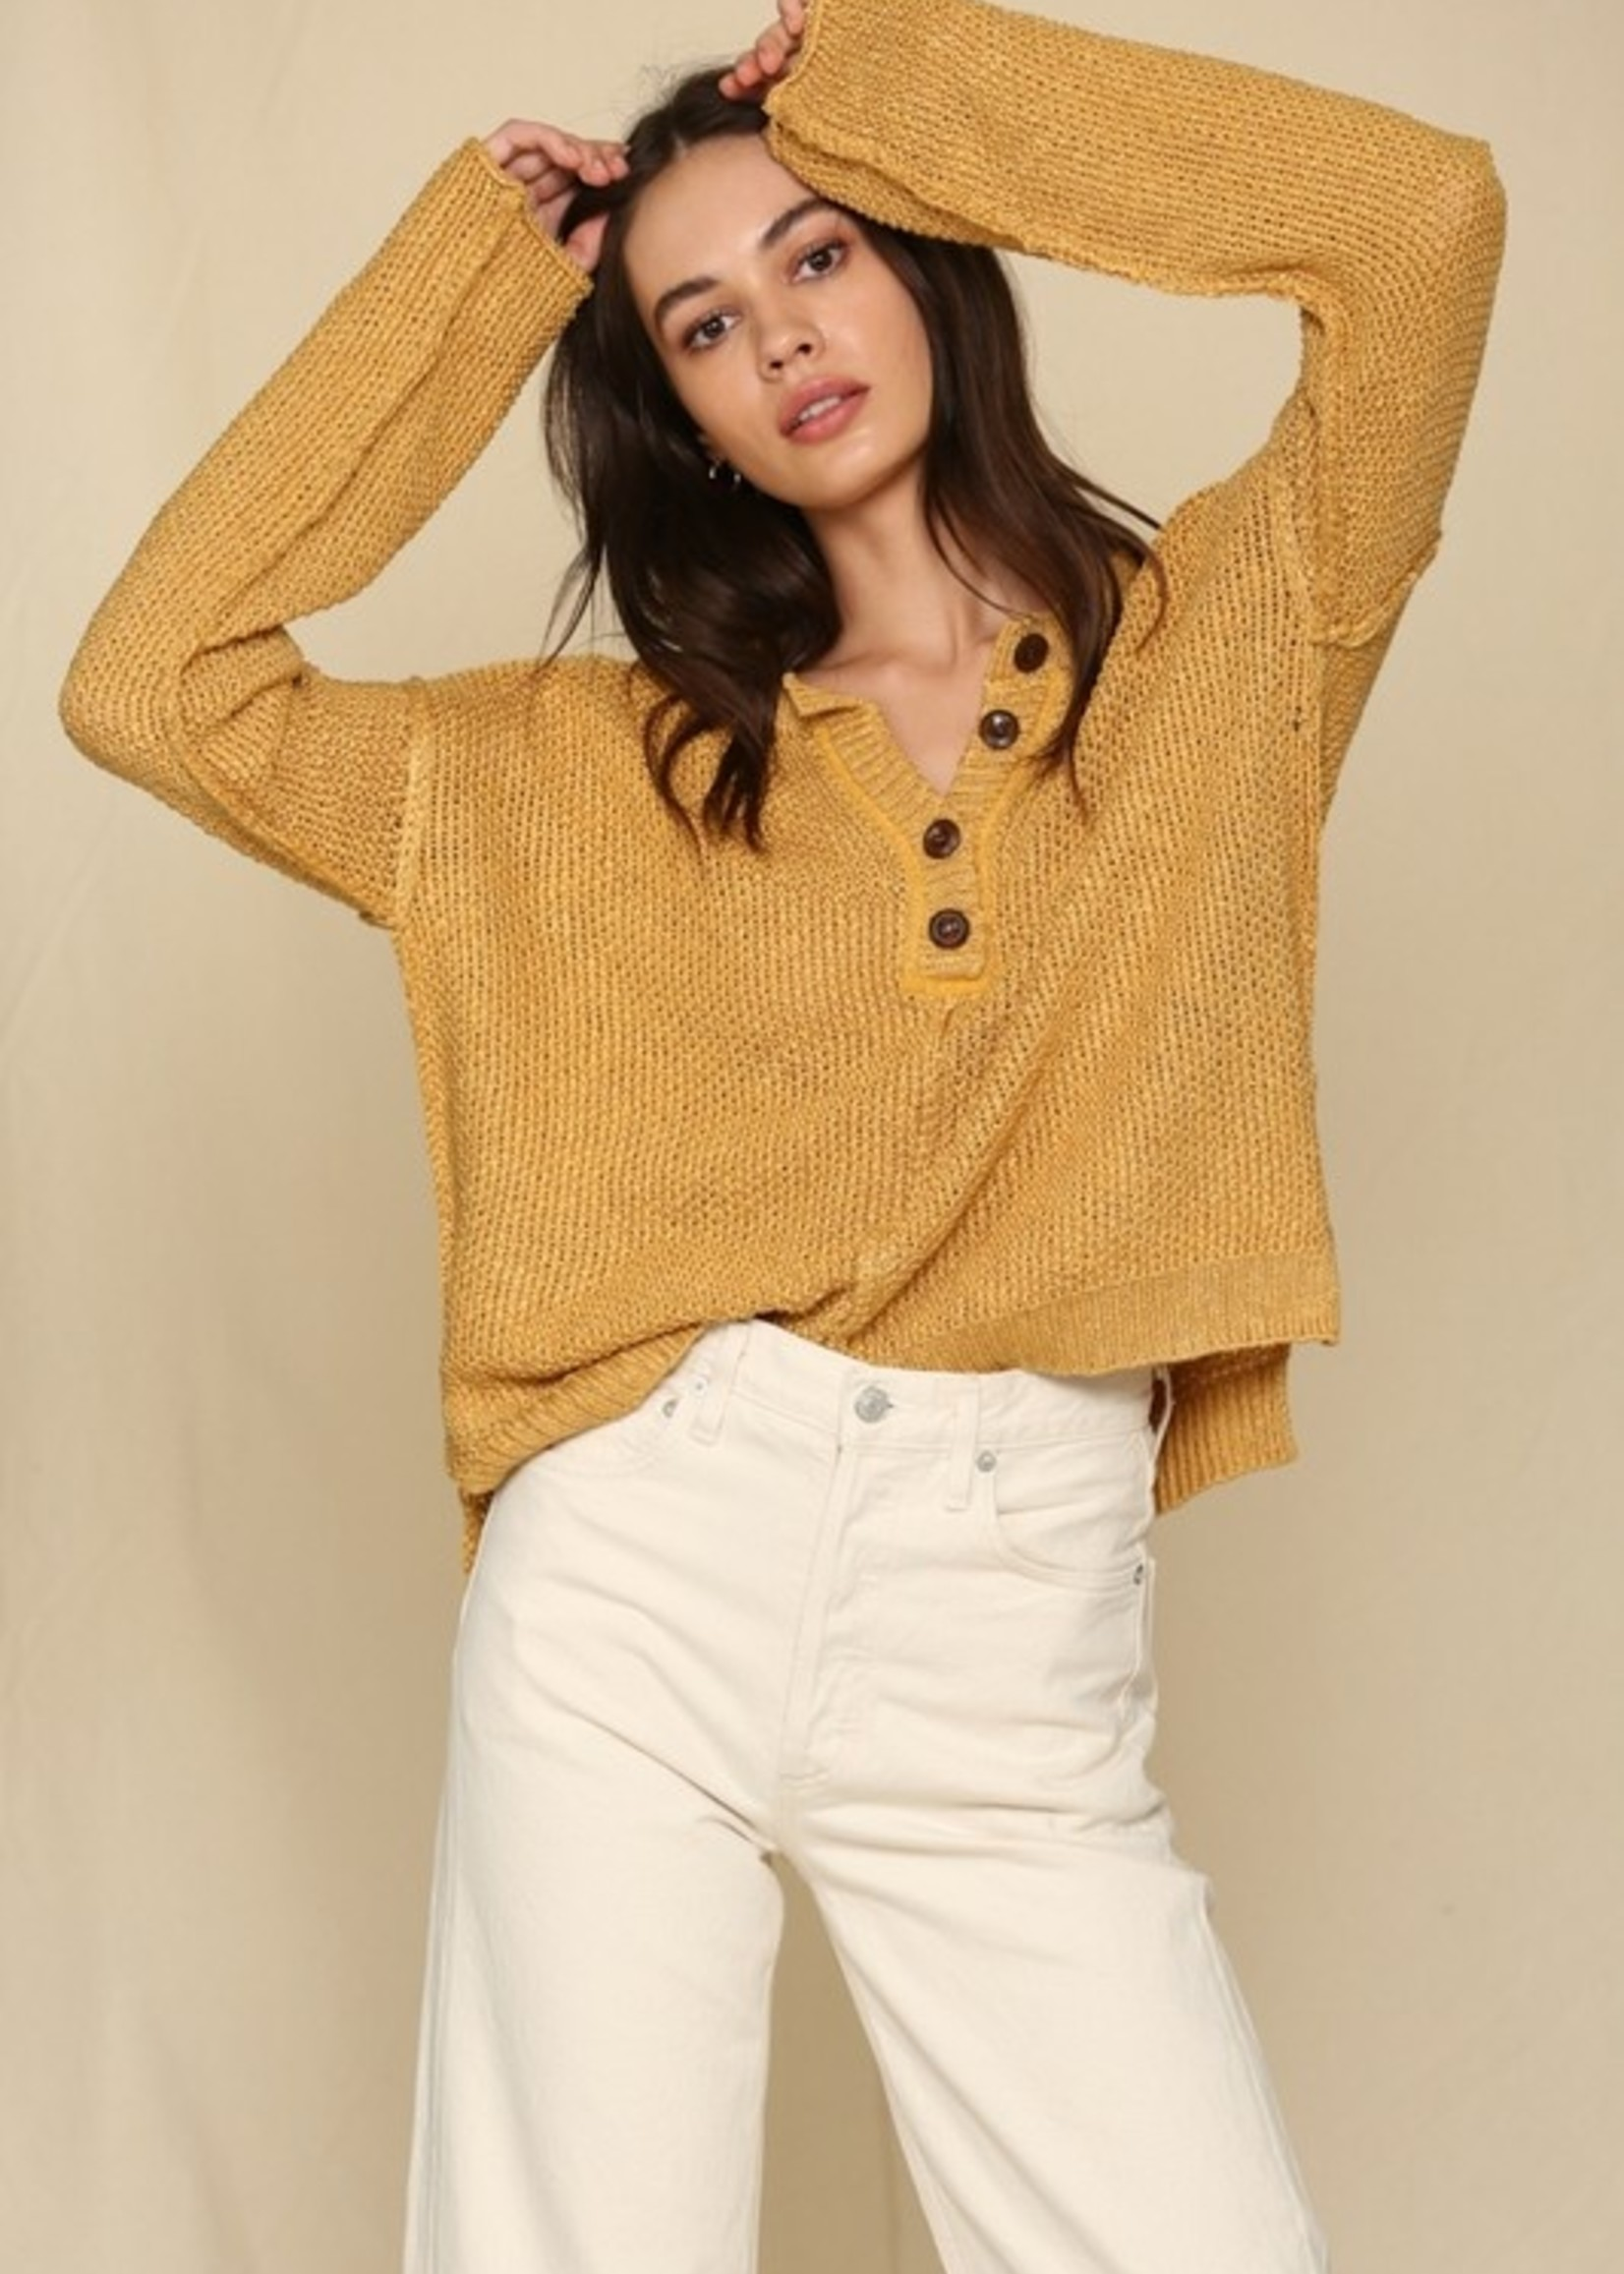 Knit Sweater with Buttons - Mustard